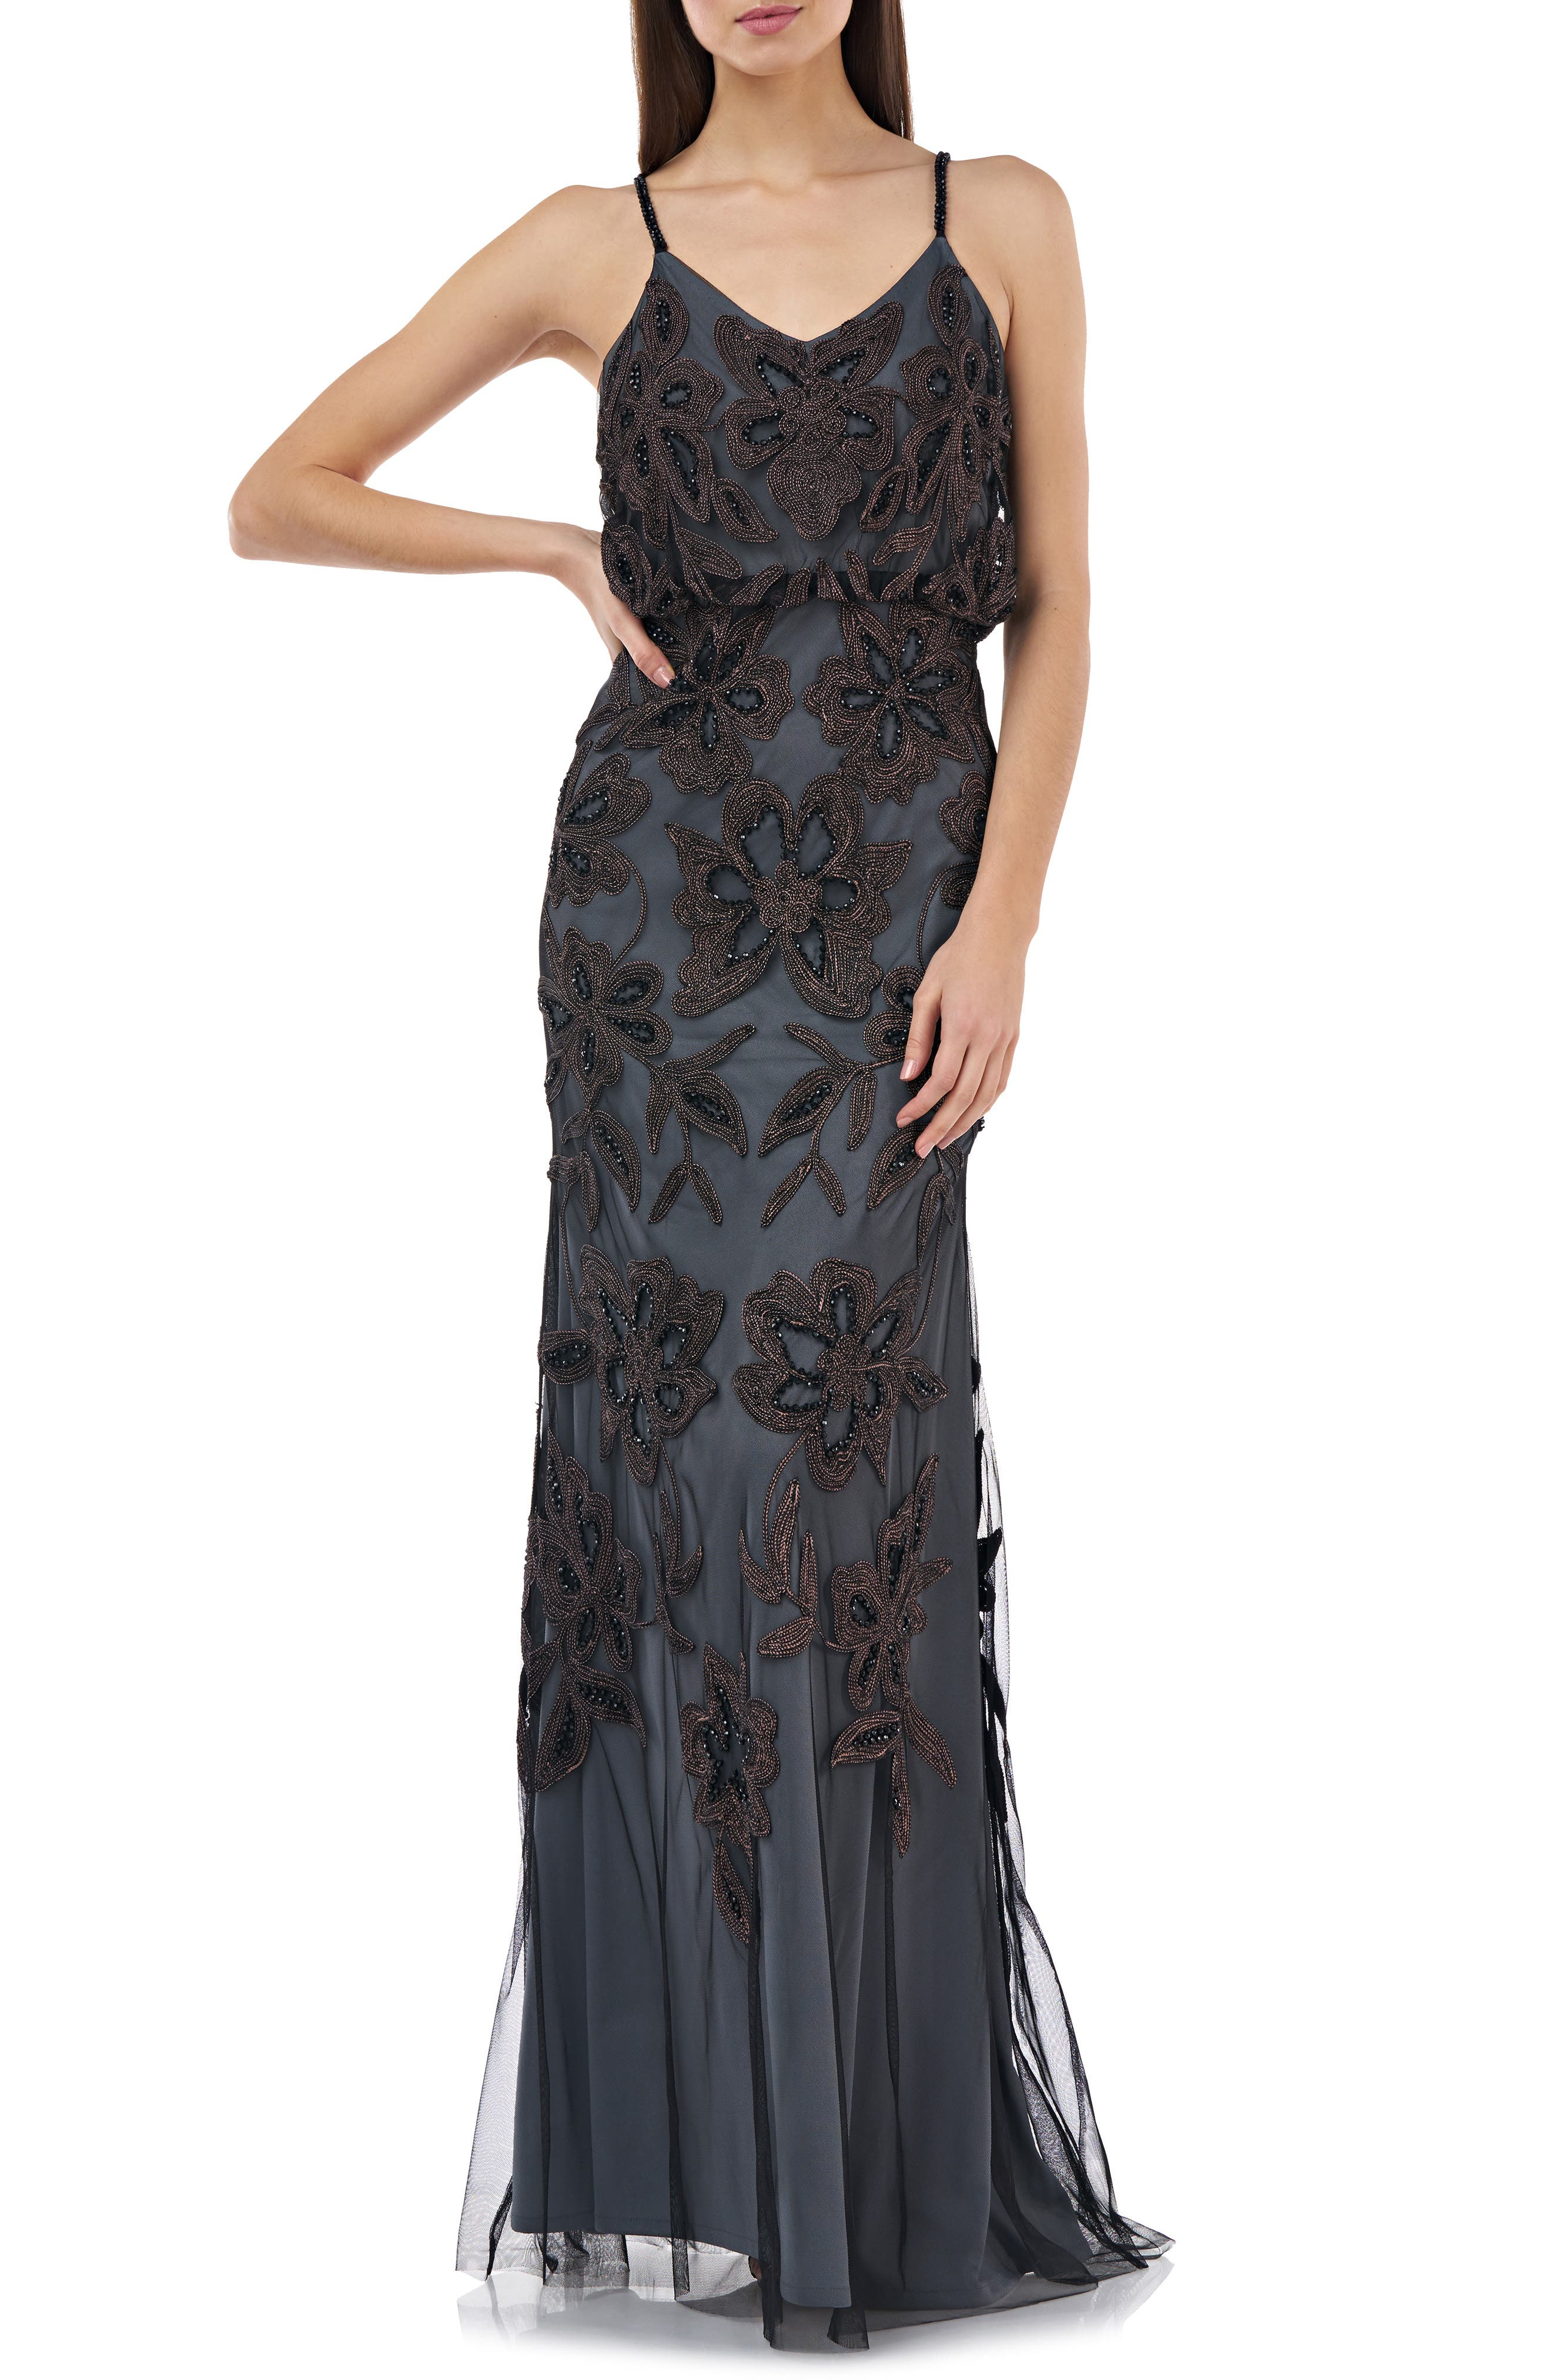 Edwardian Evening Gowns , Ballgowns, Formal Dresses Womens Js Collections Beaded Blouson Gown $338.00 AT vintagedancer.com